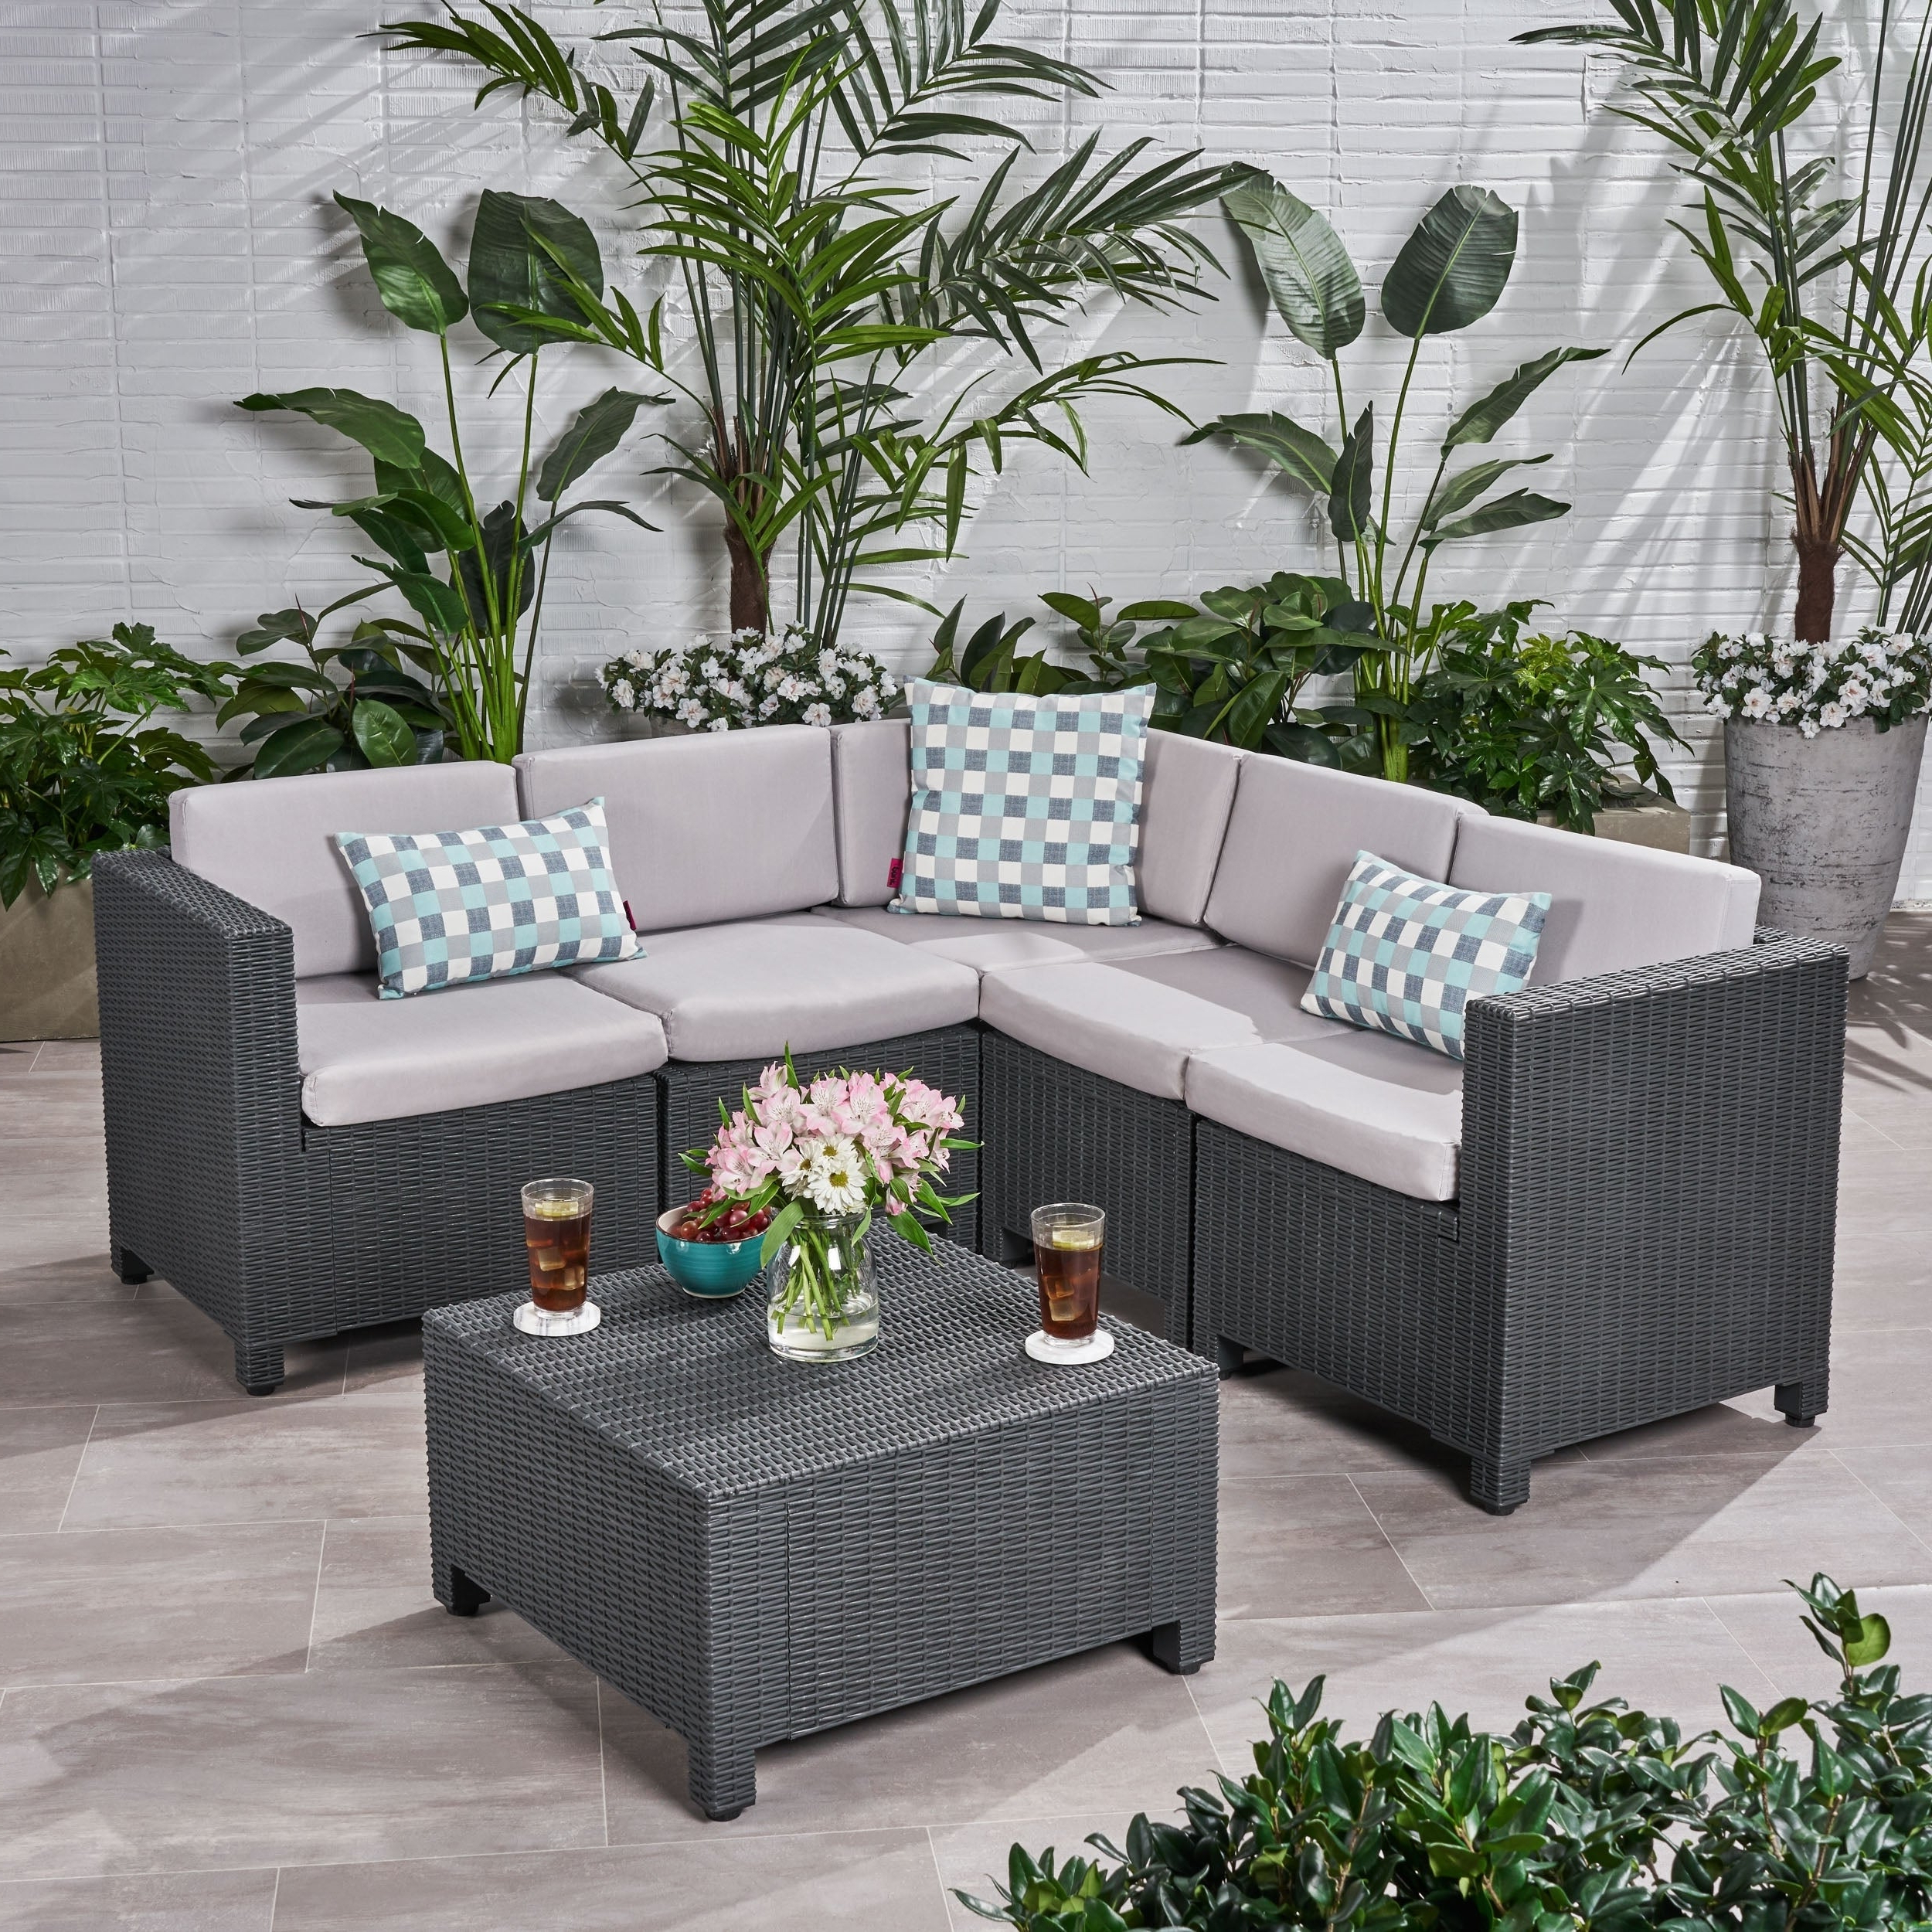 Well Known Madison Avenue Patio Sectionals With Sunbrella Cushions For Buy Sectional Outdoor Sofas, Chairs & Sectionals Online At (View 20 of 20)